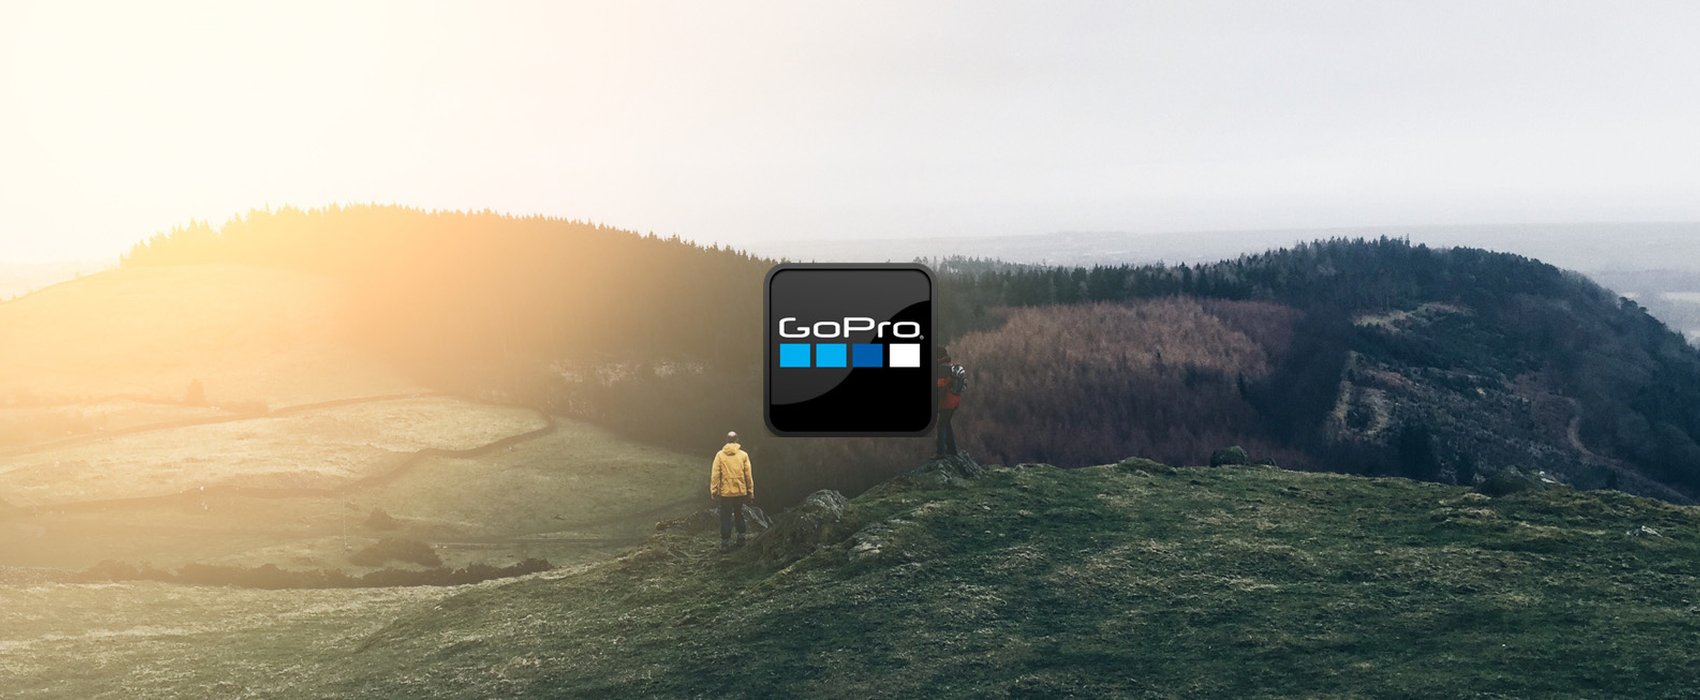 Image of a landscape displaying the GoPro logo